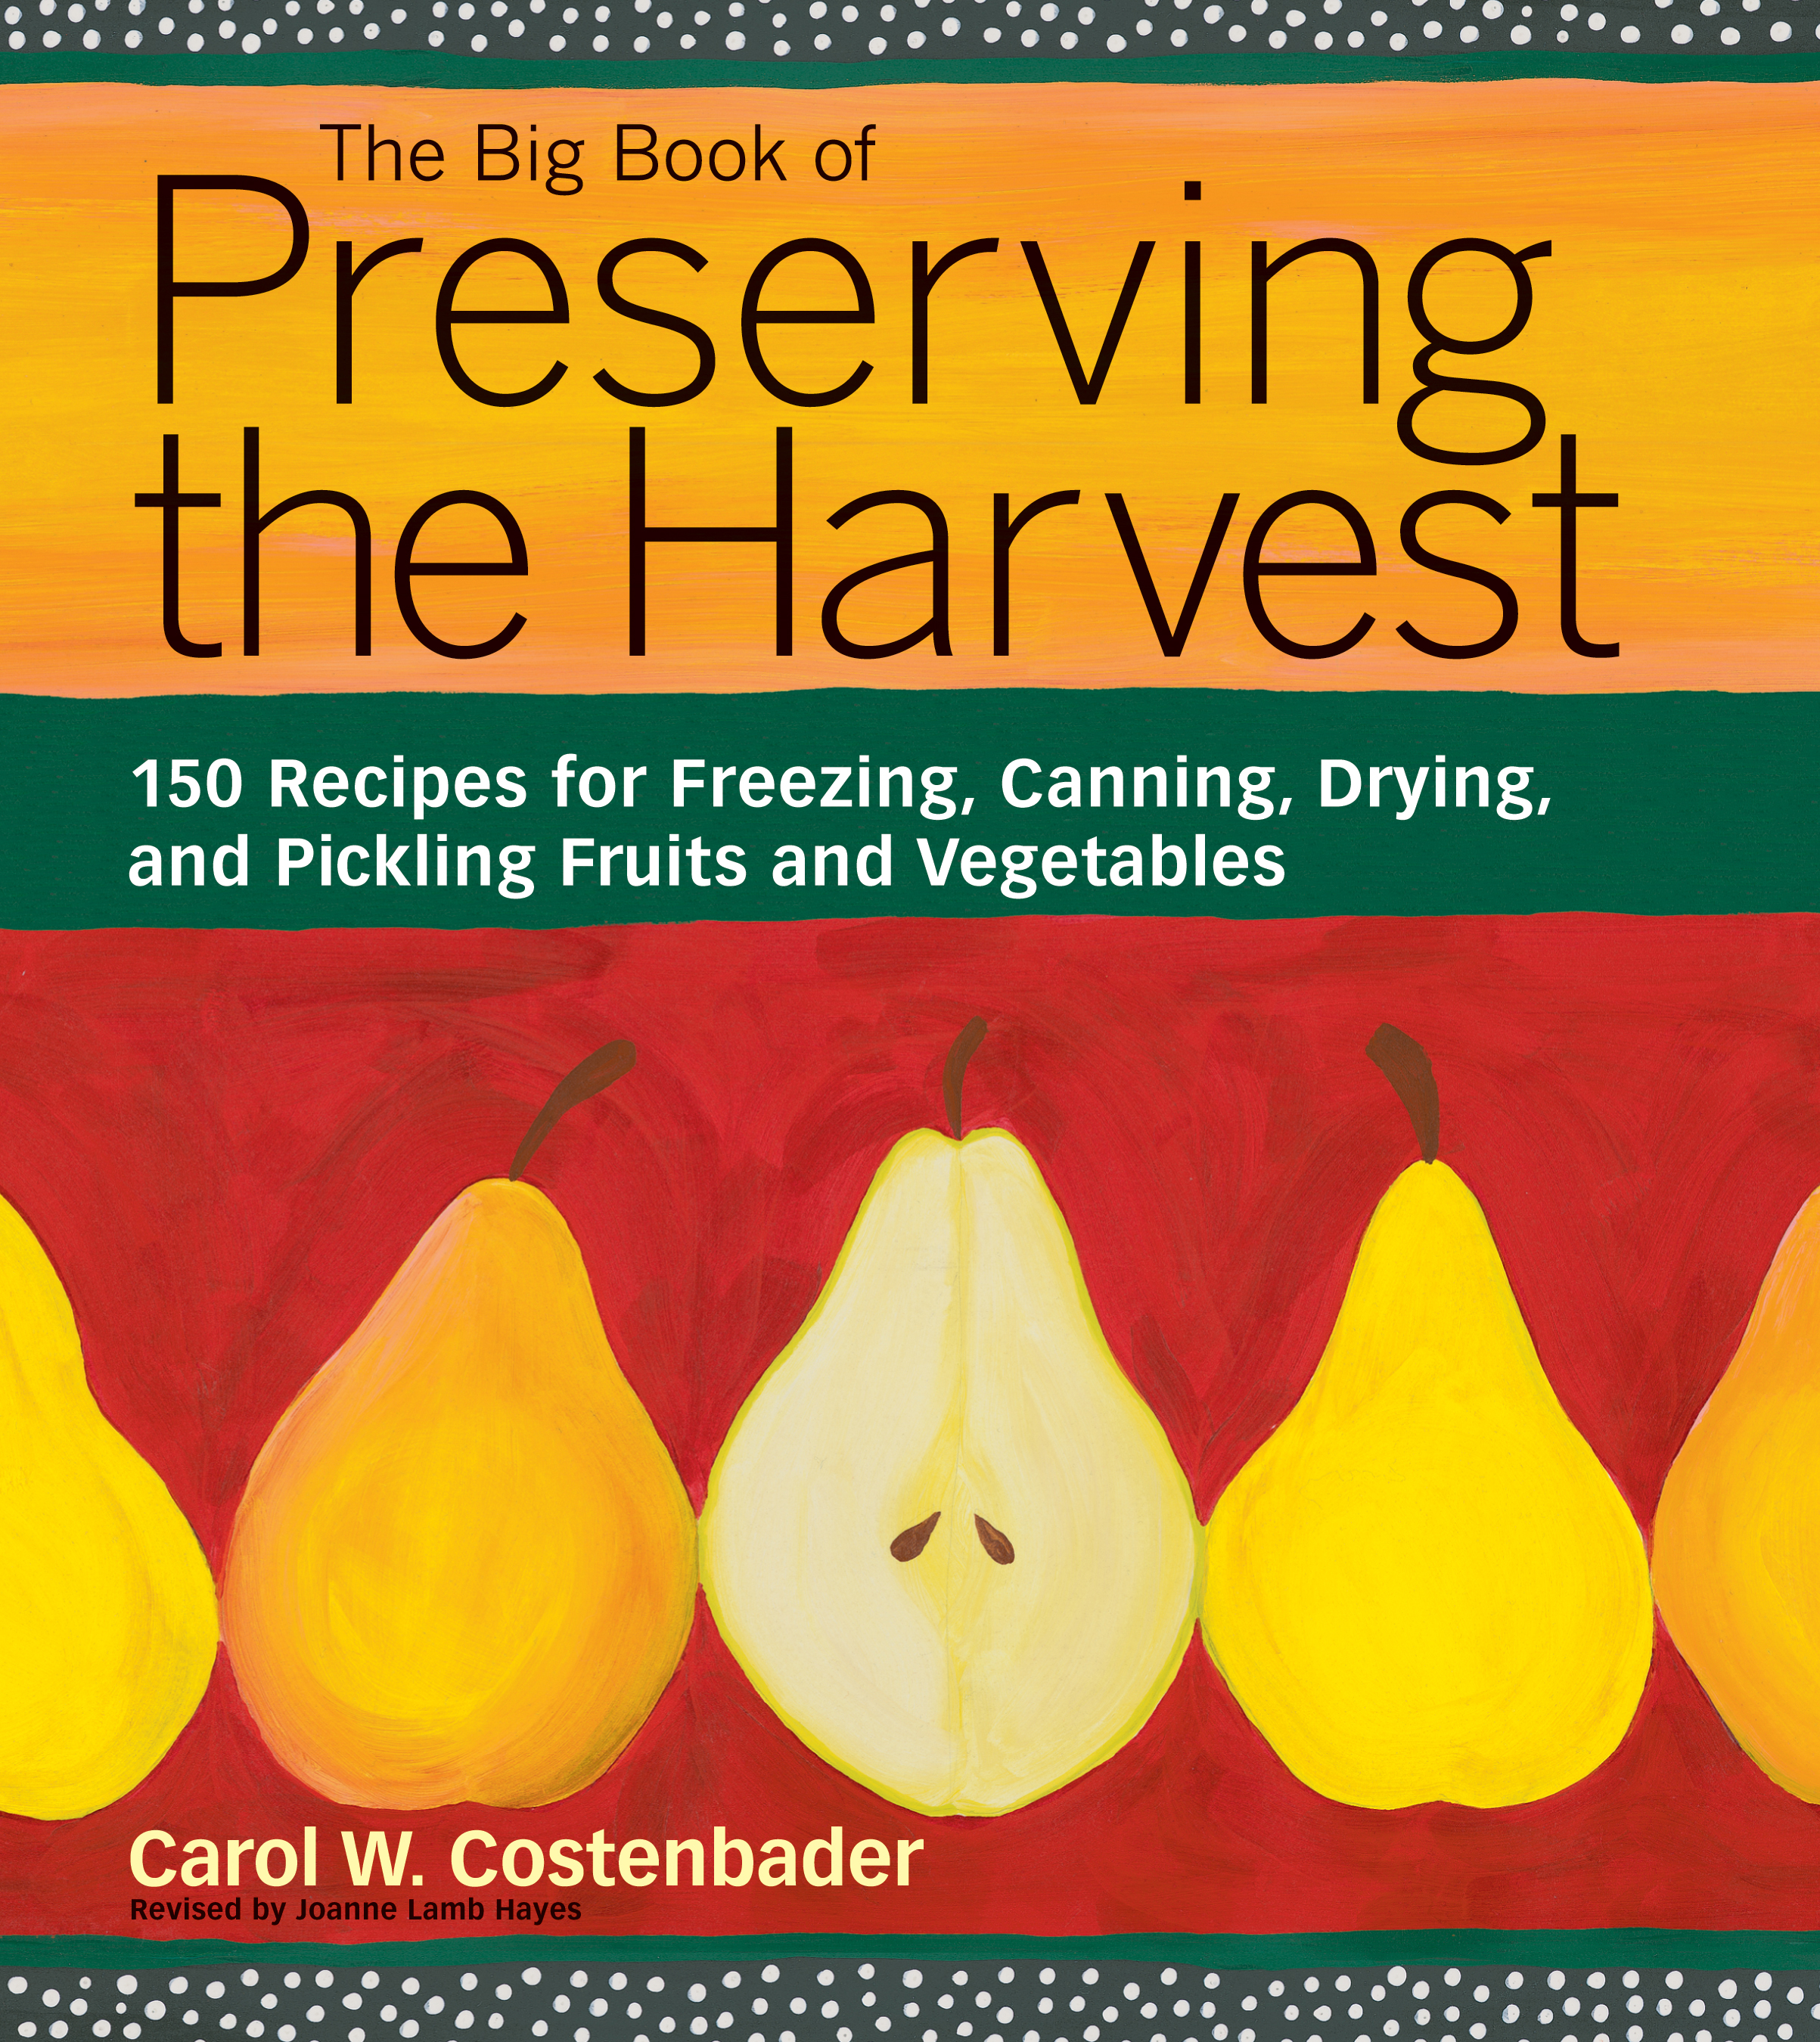 The Big Book of Preserving the Harvest 150 Recipes for Freezing, Canning, Drying and Pickling Fruits and Vegetables - Carol W. Costenbader